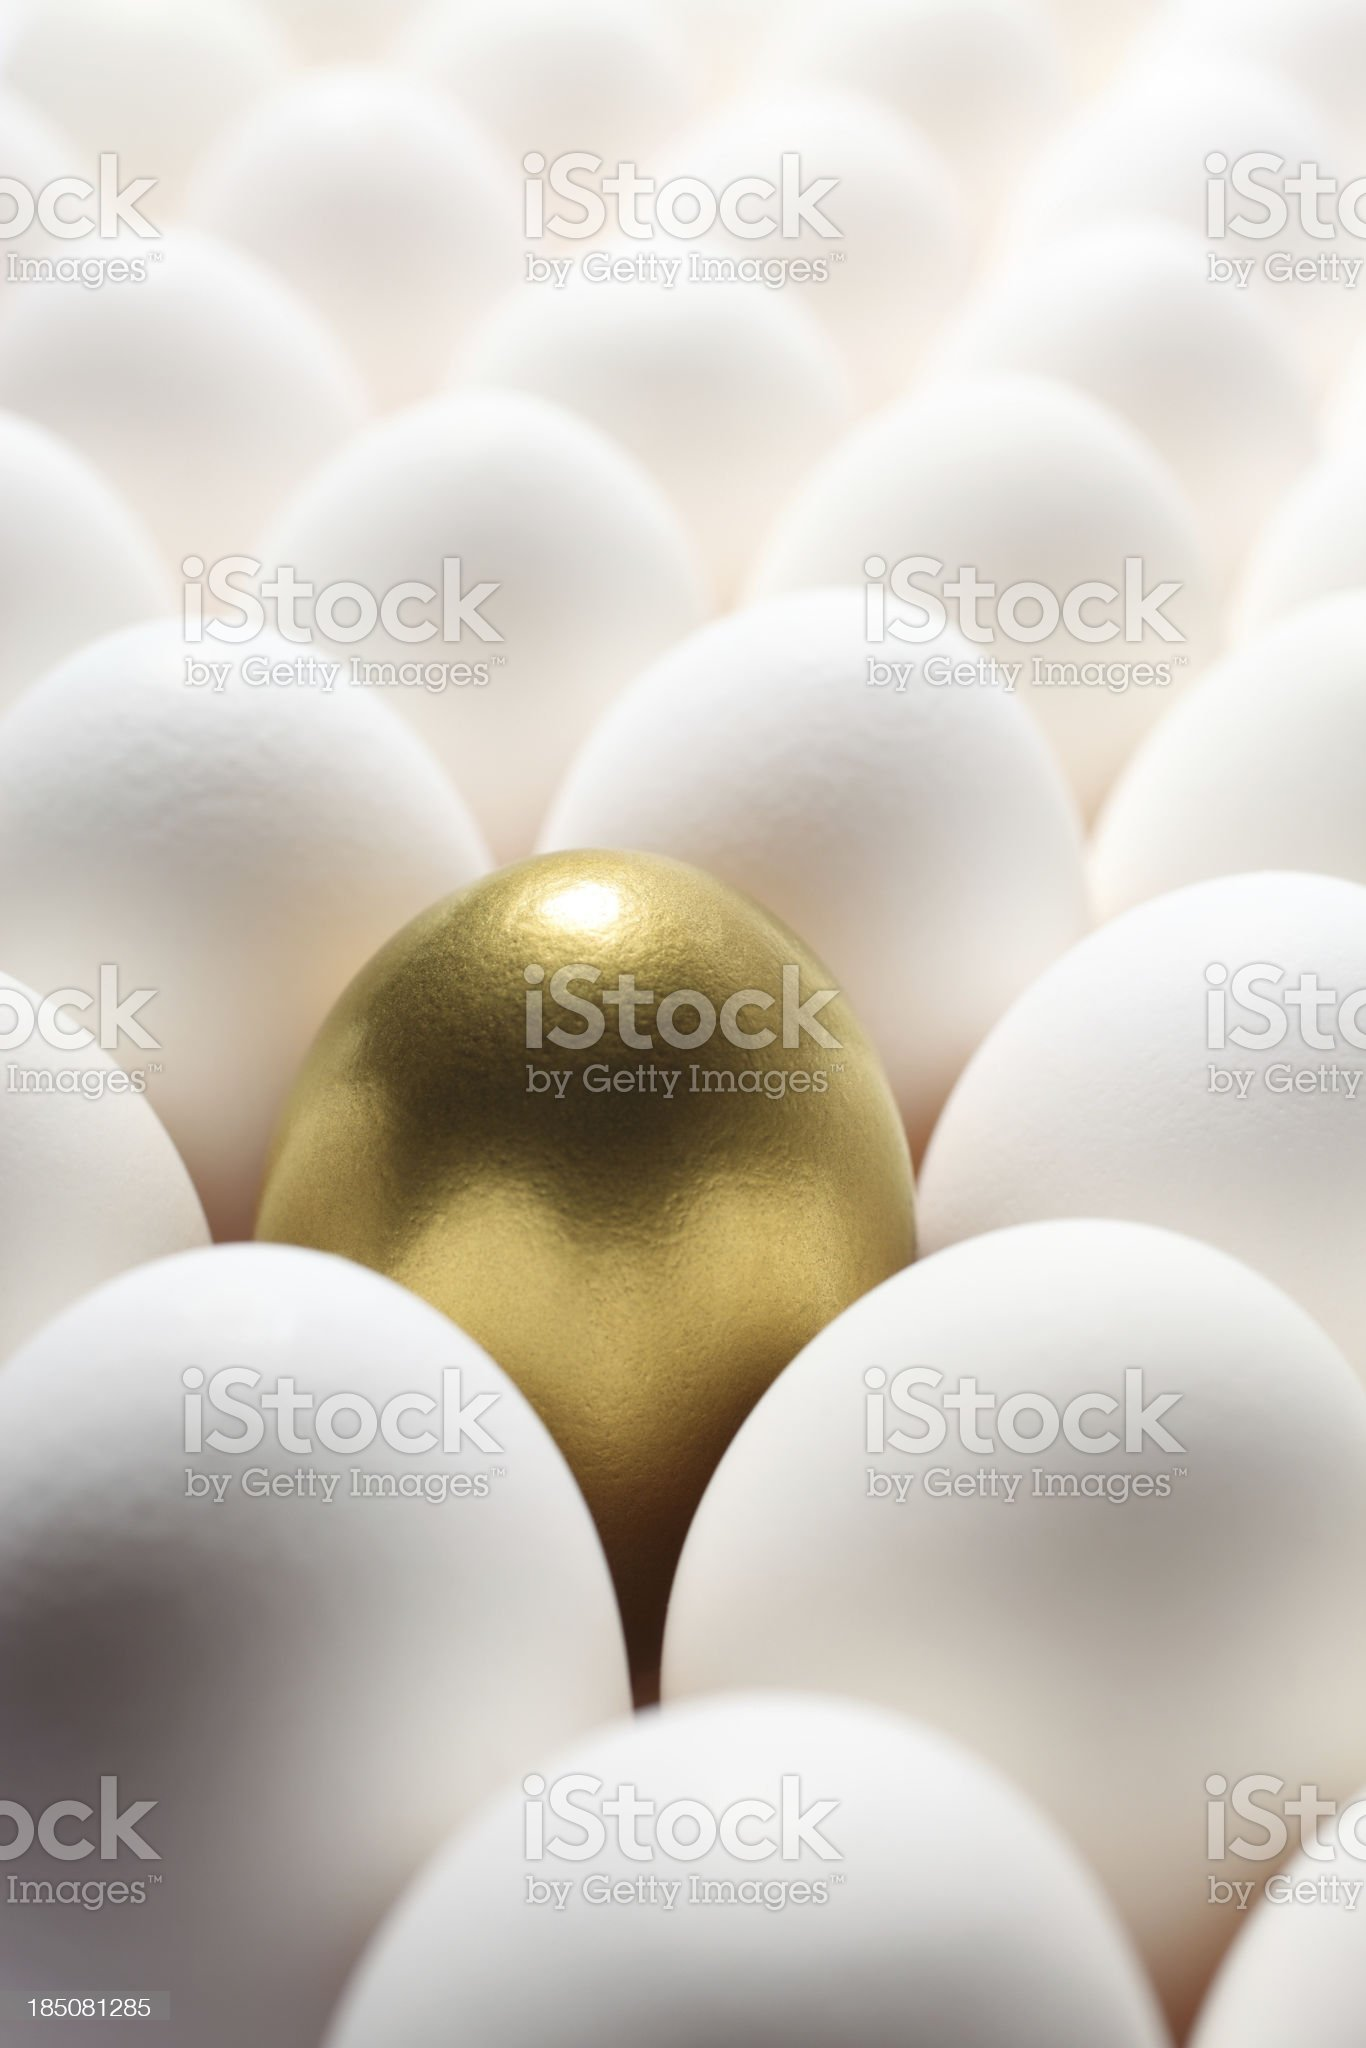 Gold Egg in the Middle of Many Regular Eggs royalty-free stock photo